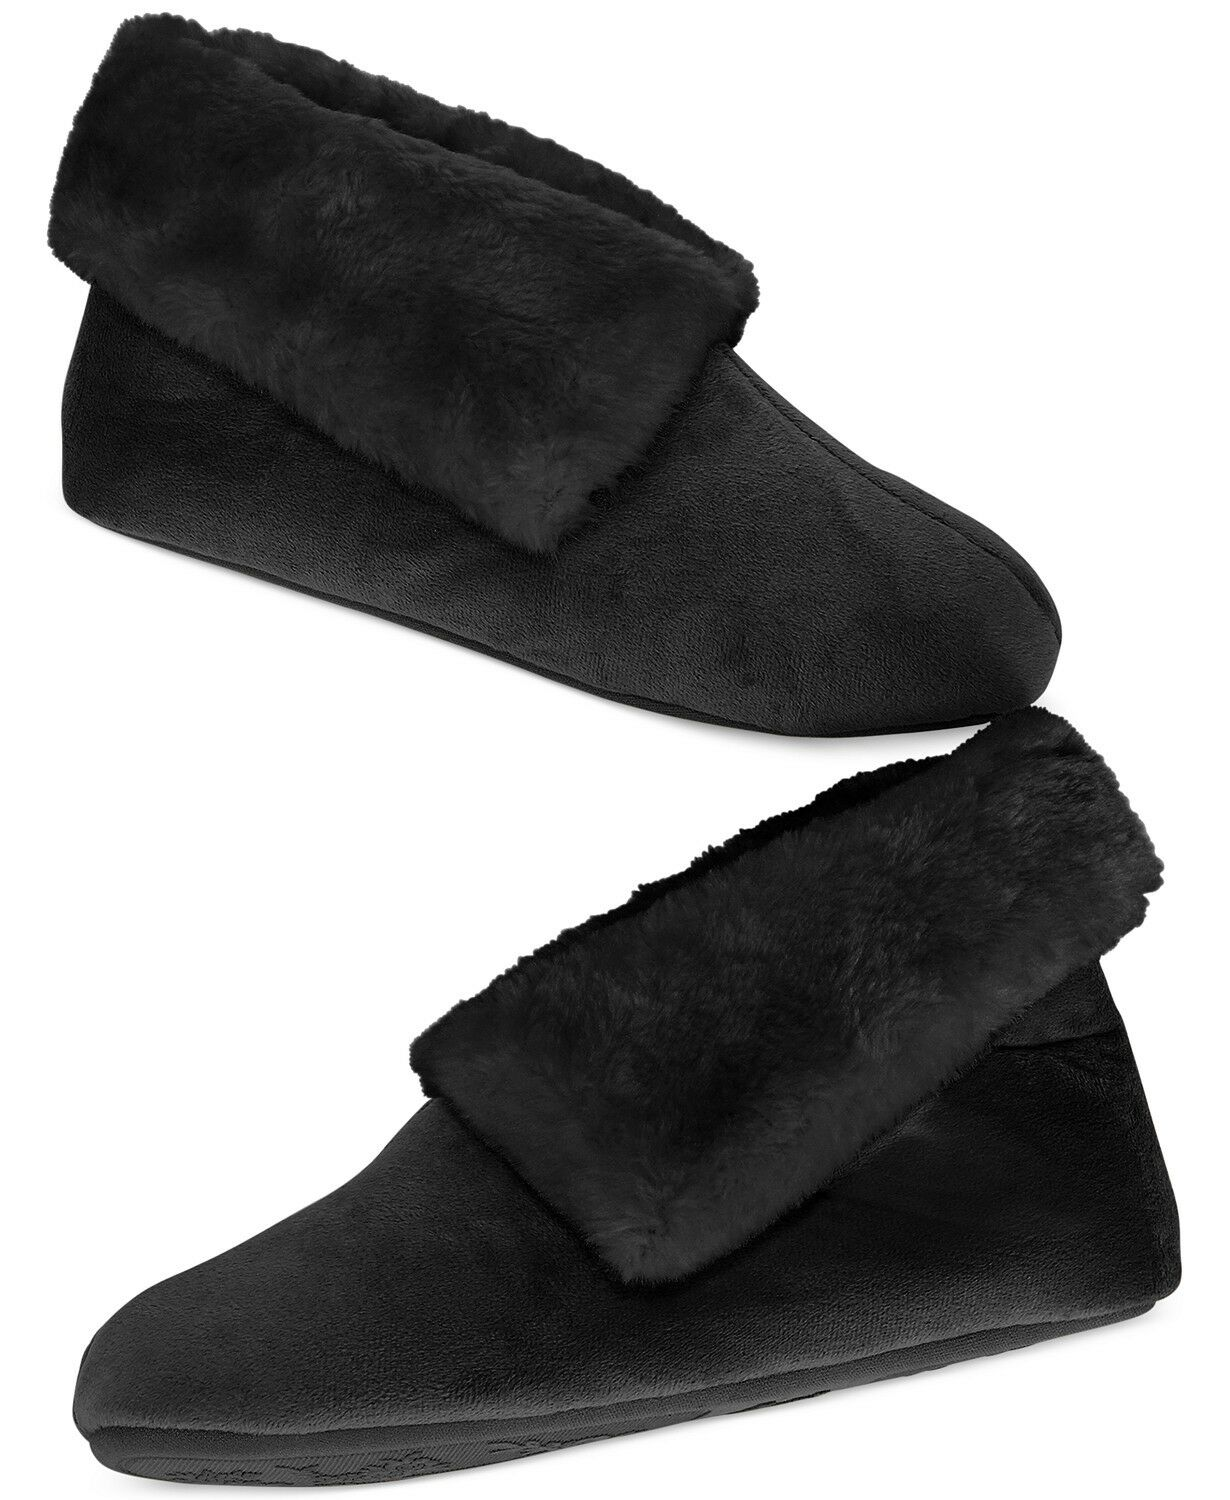 NWT Charter Club Black Microvelour Memory Foam Bootie Slippers Booties S